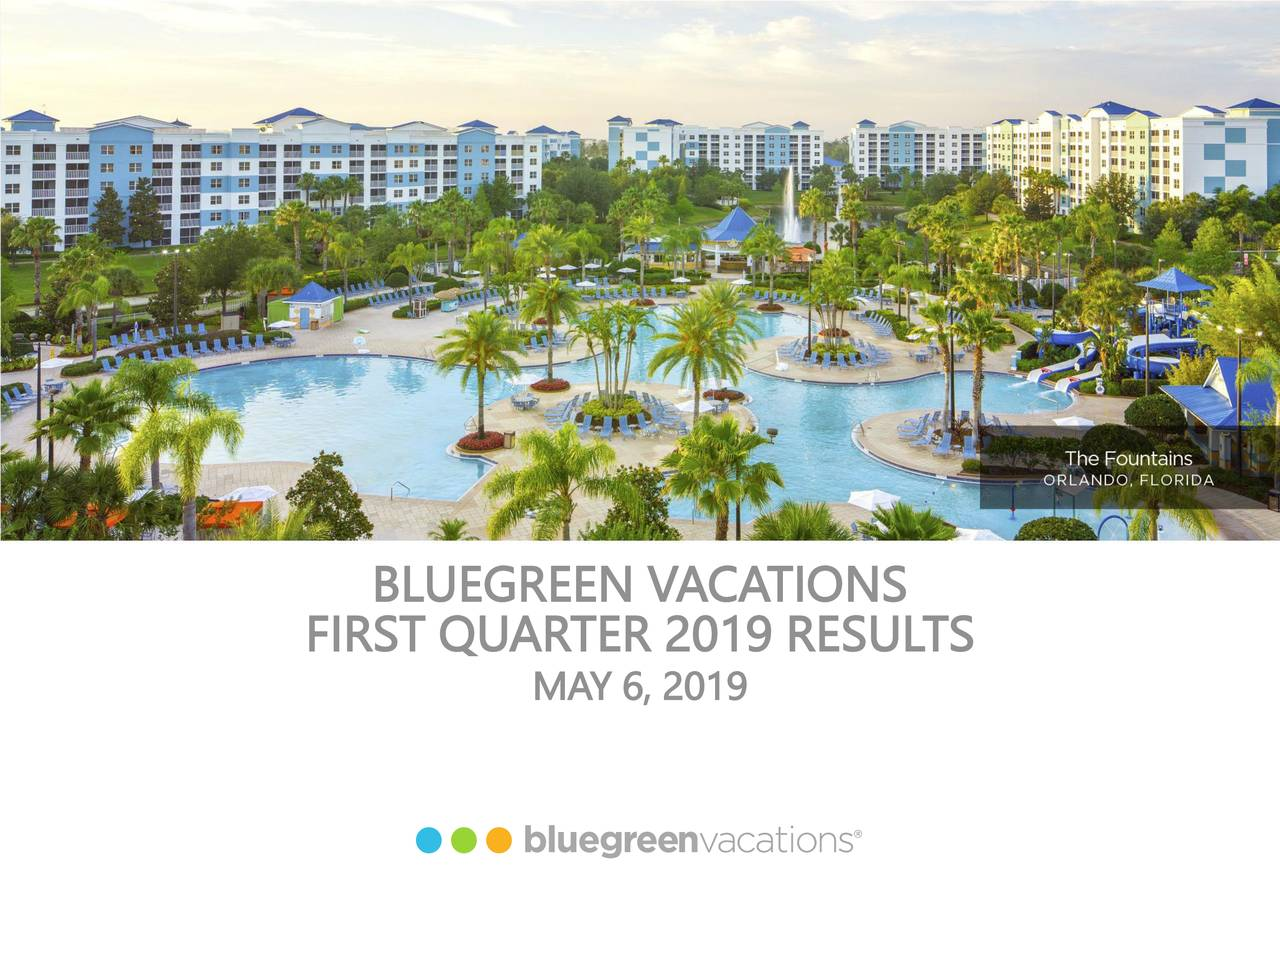 Not Just When You Ask For It! BLUEGREEN VACATIONS FIRST QUARTER 2019 RESULTS MAY 6, 2019